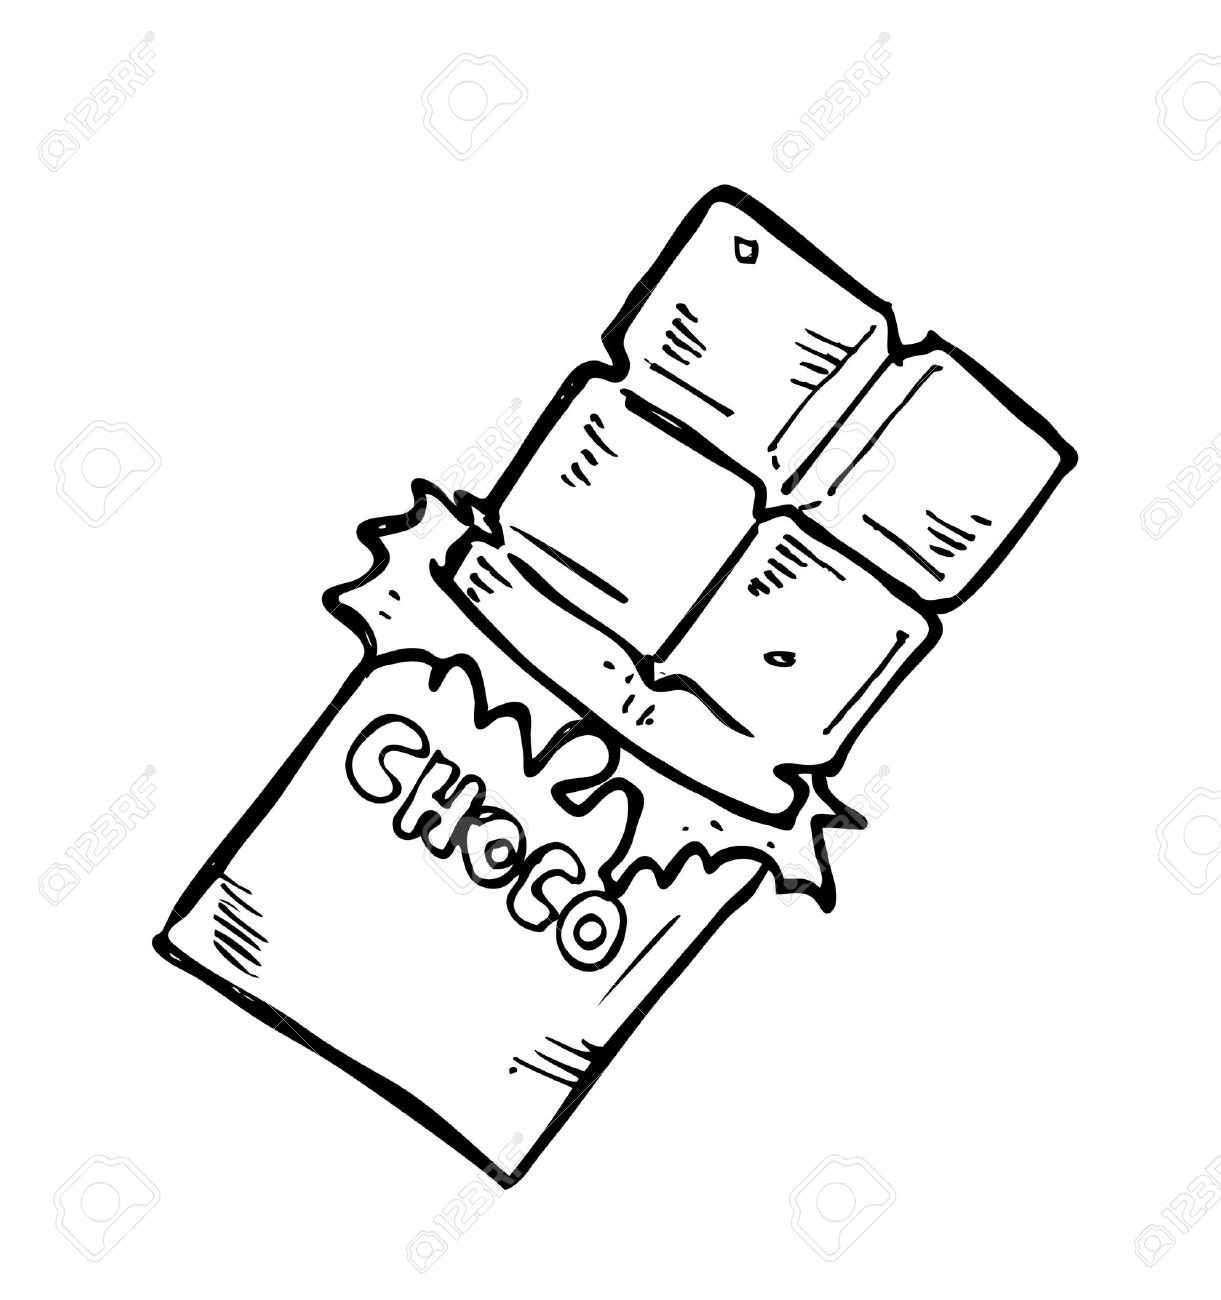 Chocolate bar clipart black and white 1 » Clipart Station.